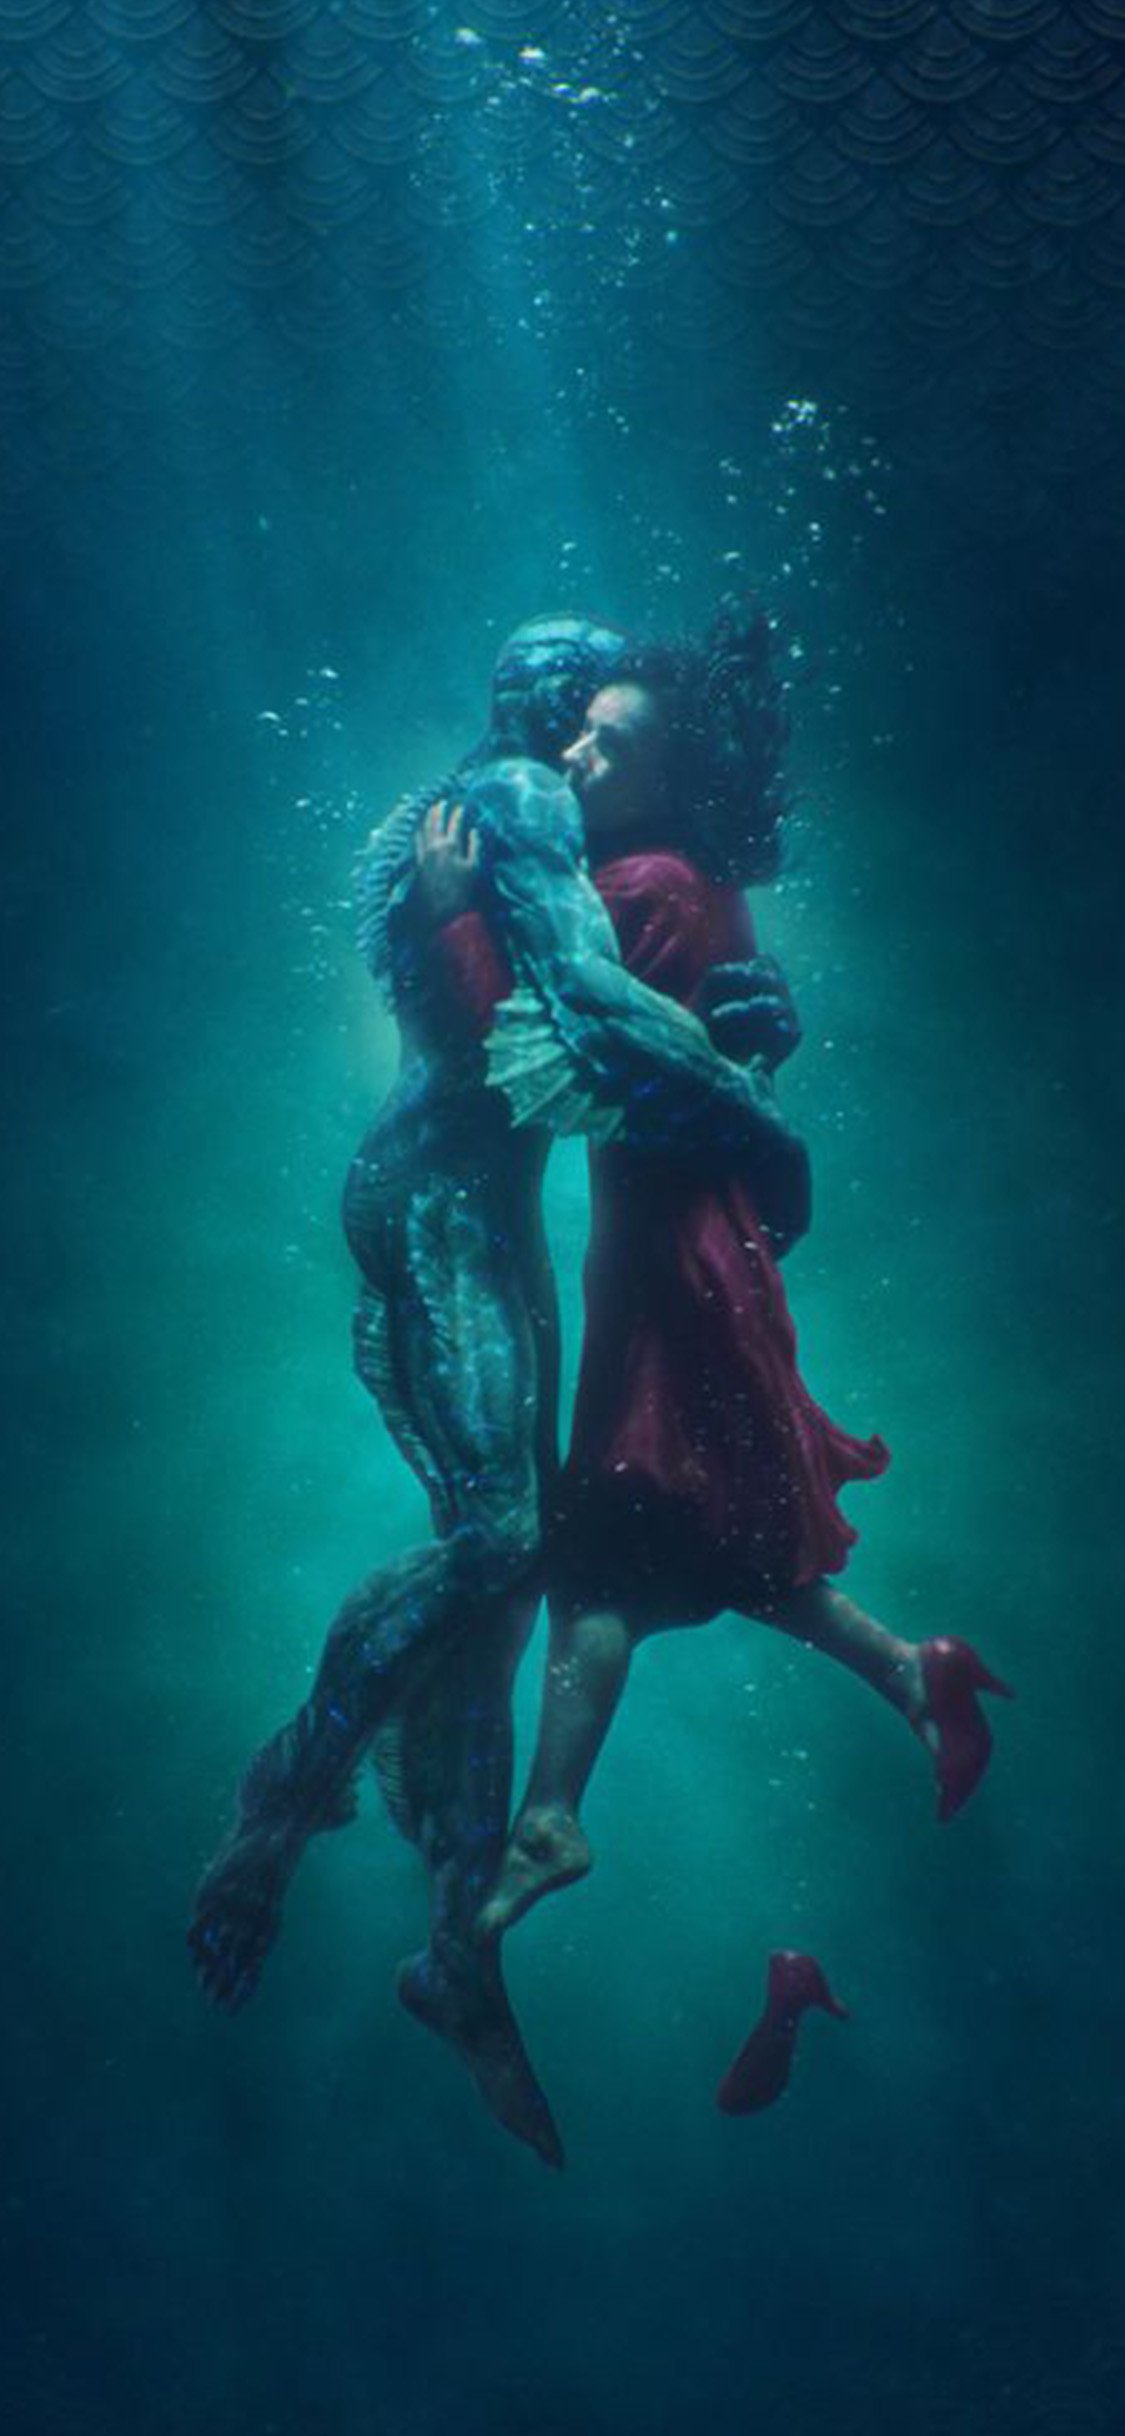 Shape of water poster film art illustration iPhone X wallpaper